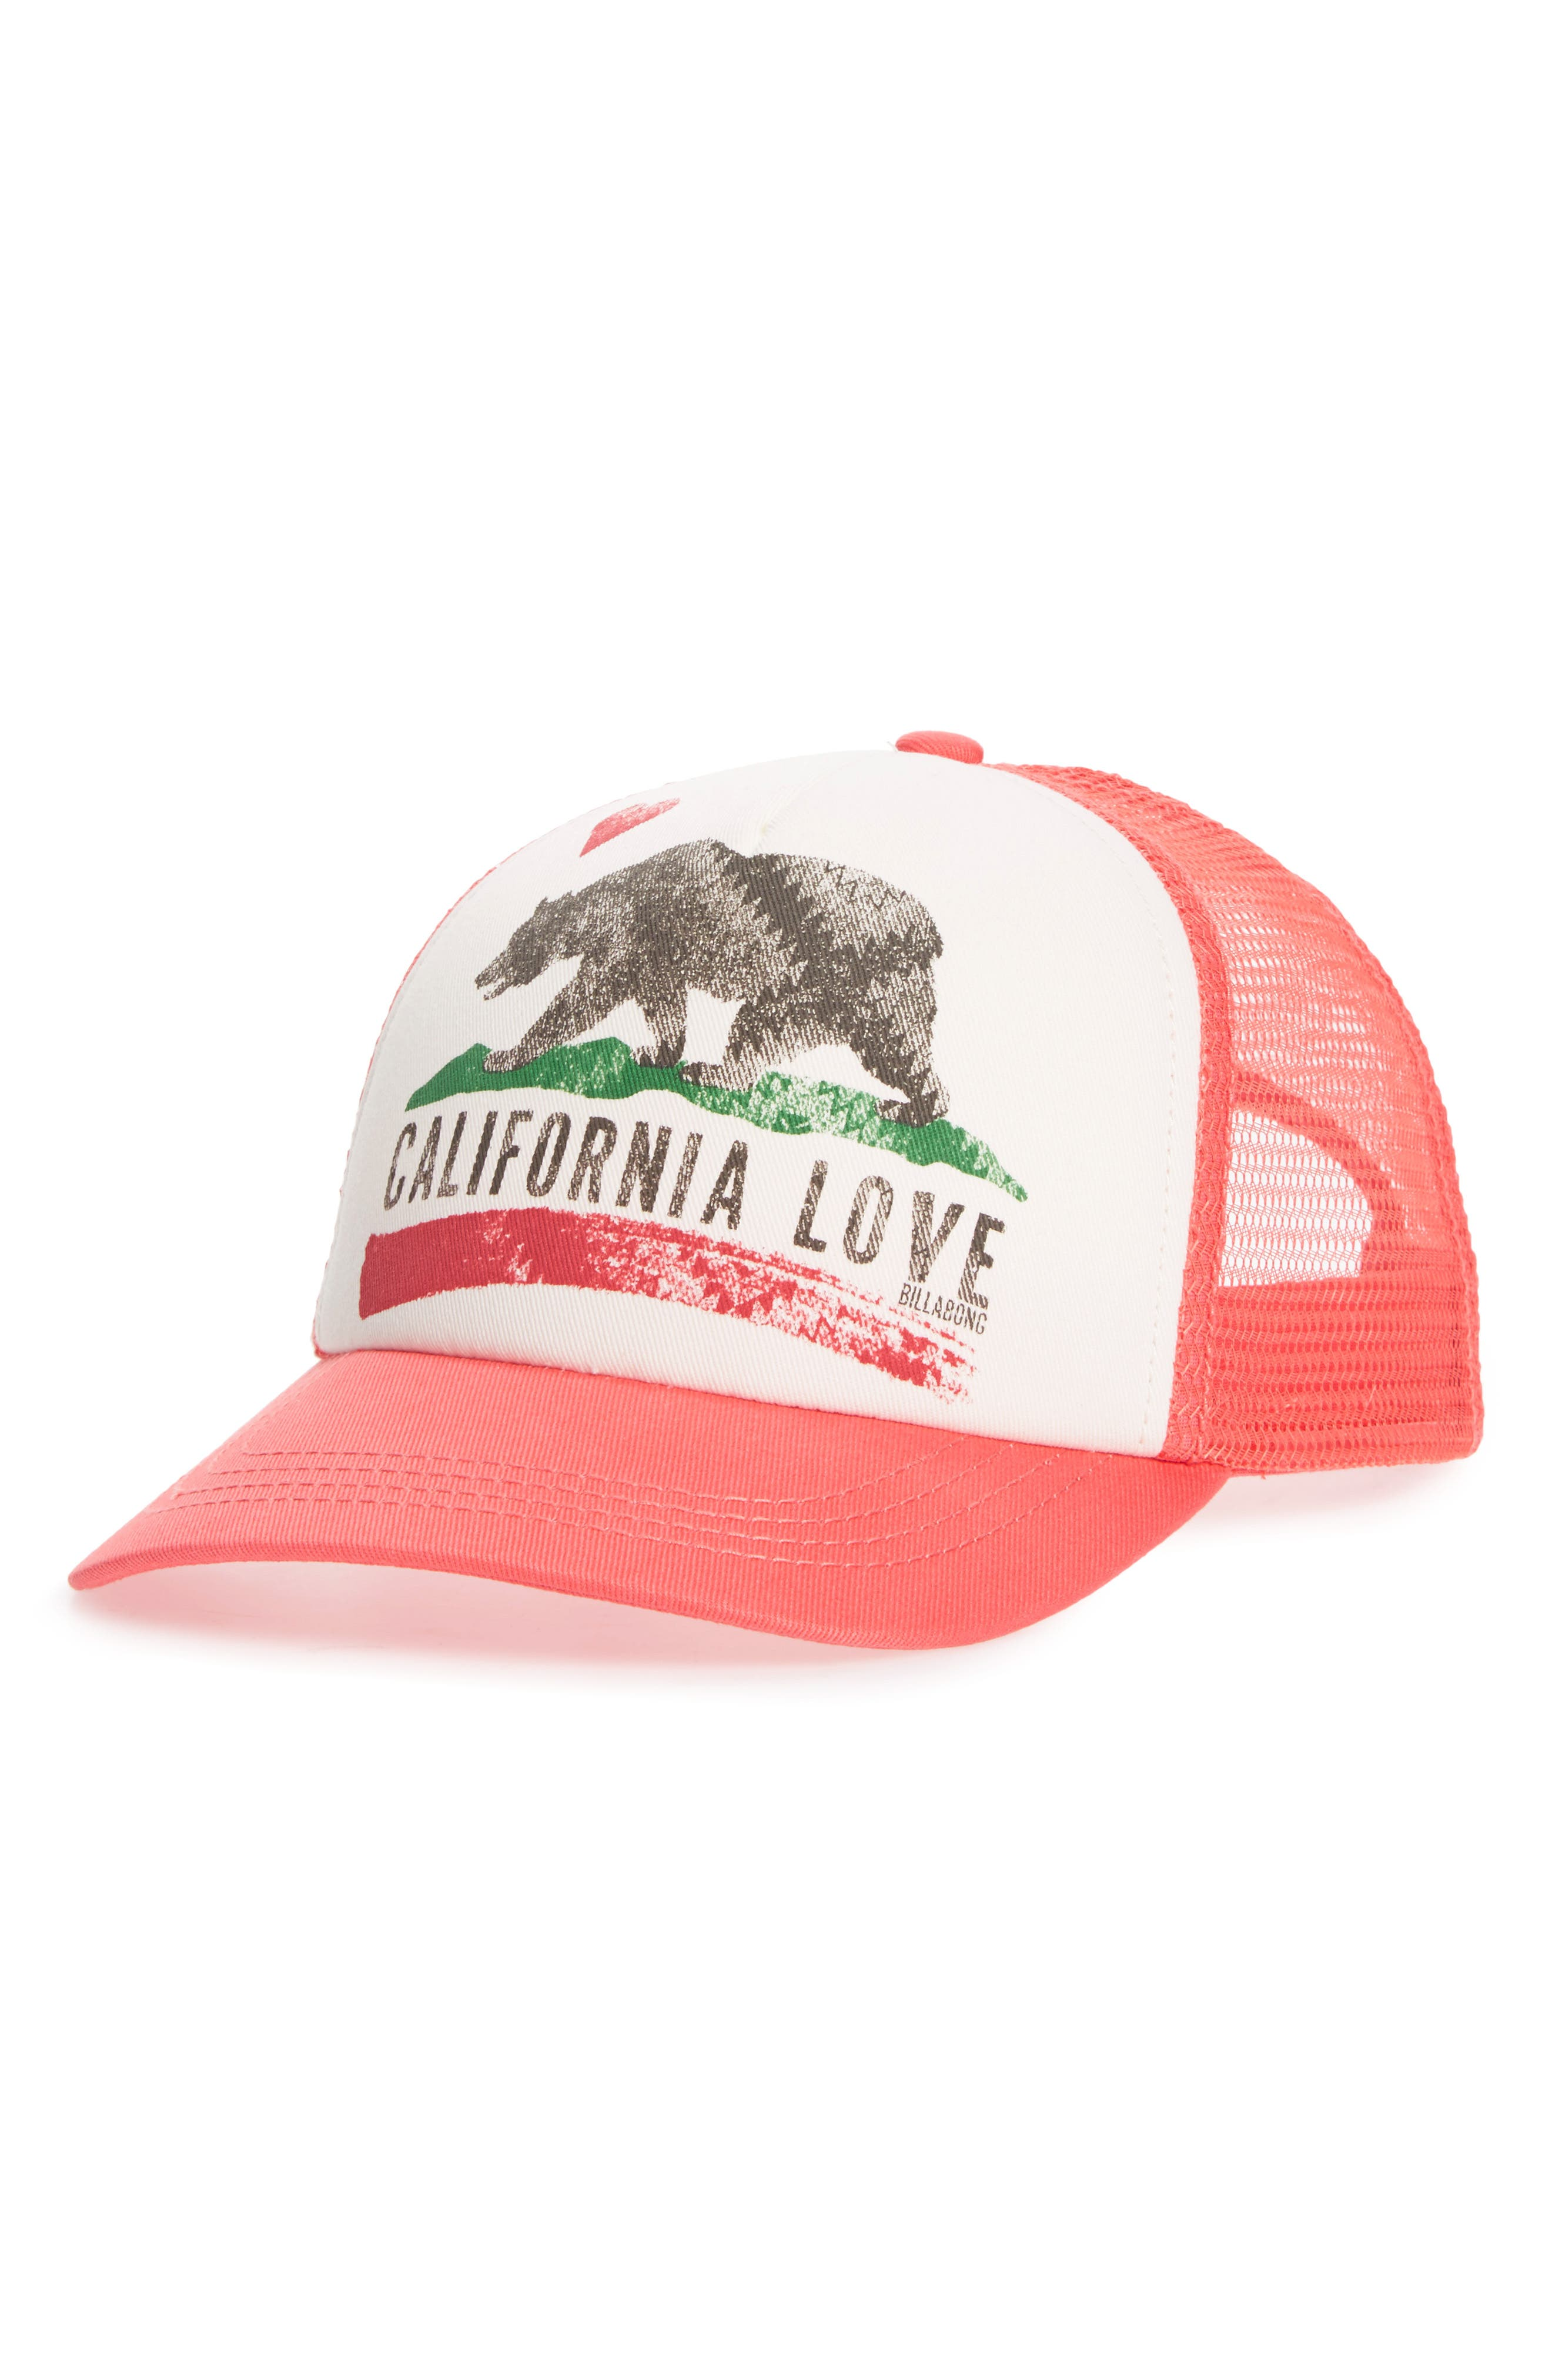 Pitstop Trucker Hat,                             Main thumbnail 1, color,                             Pink Crush